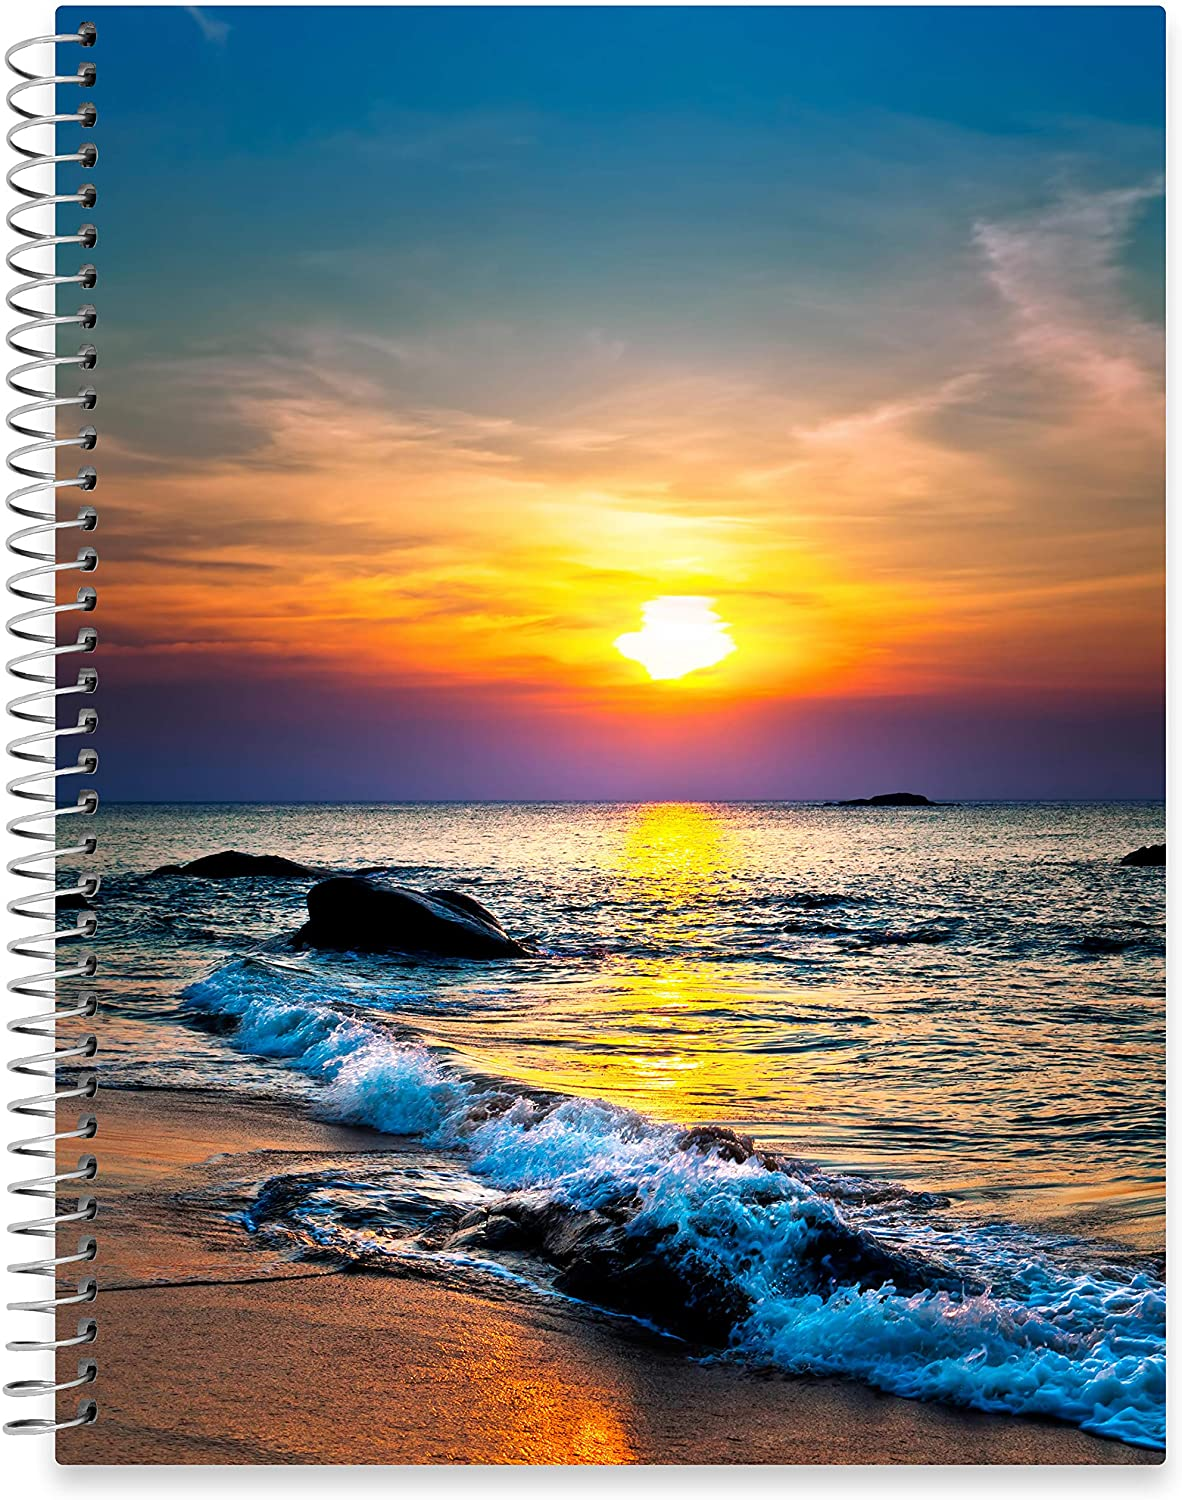 "July 2020 - June 2021 Softcover Planner - 8.5"" x 11"" - Sea Sunset Cover"